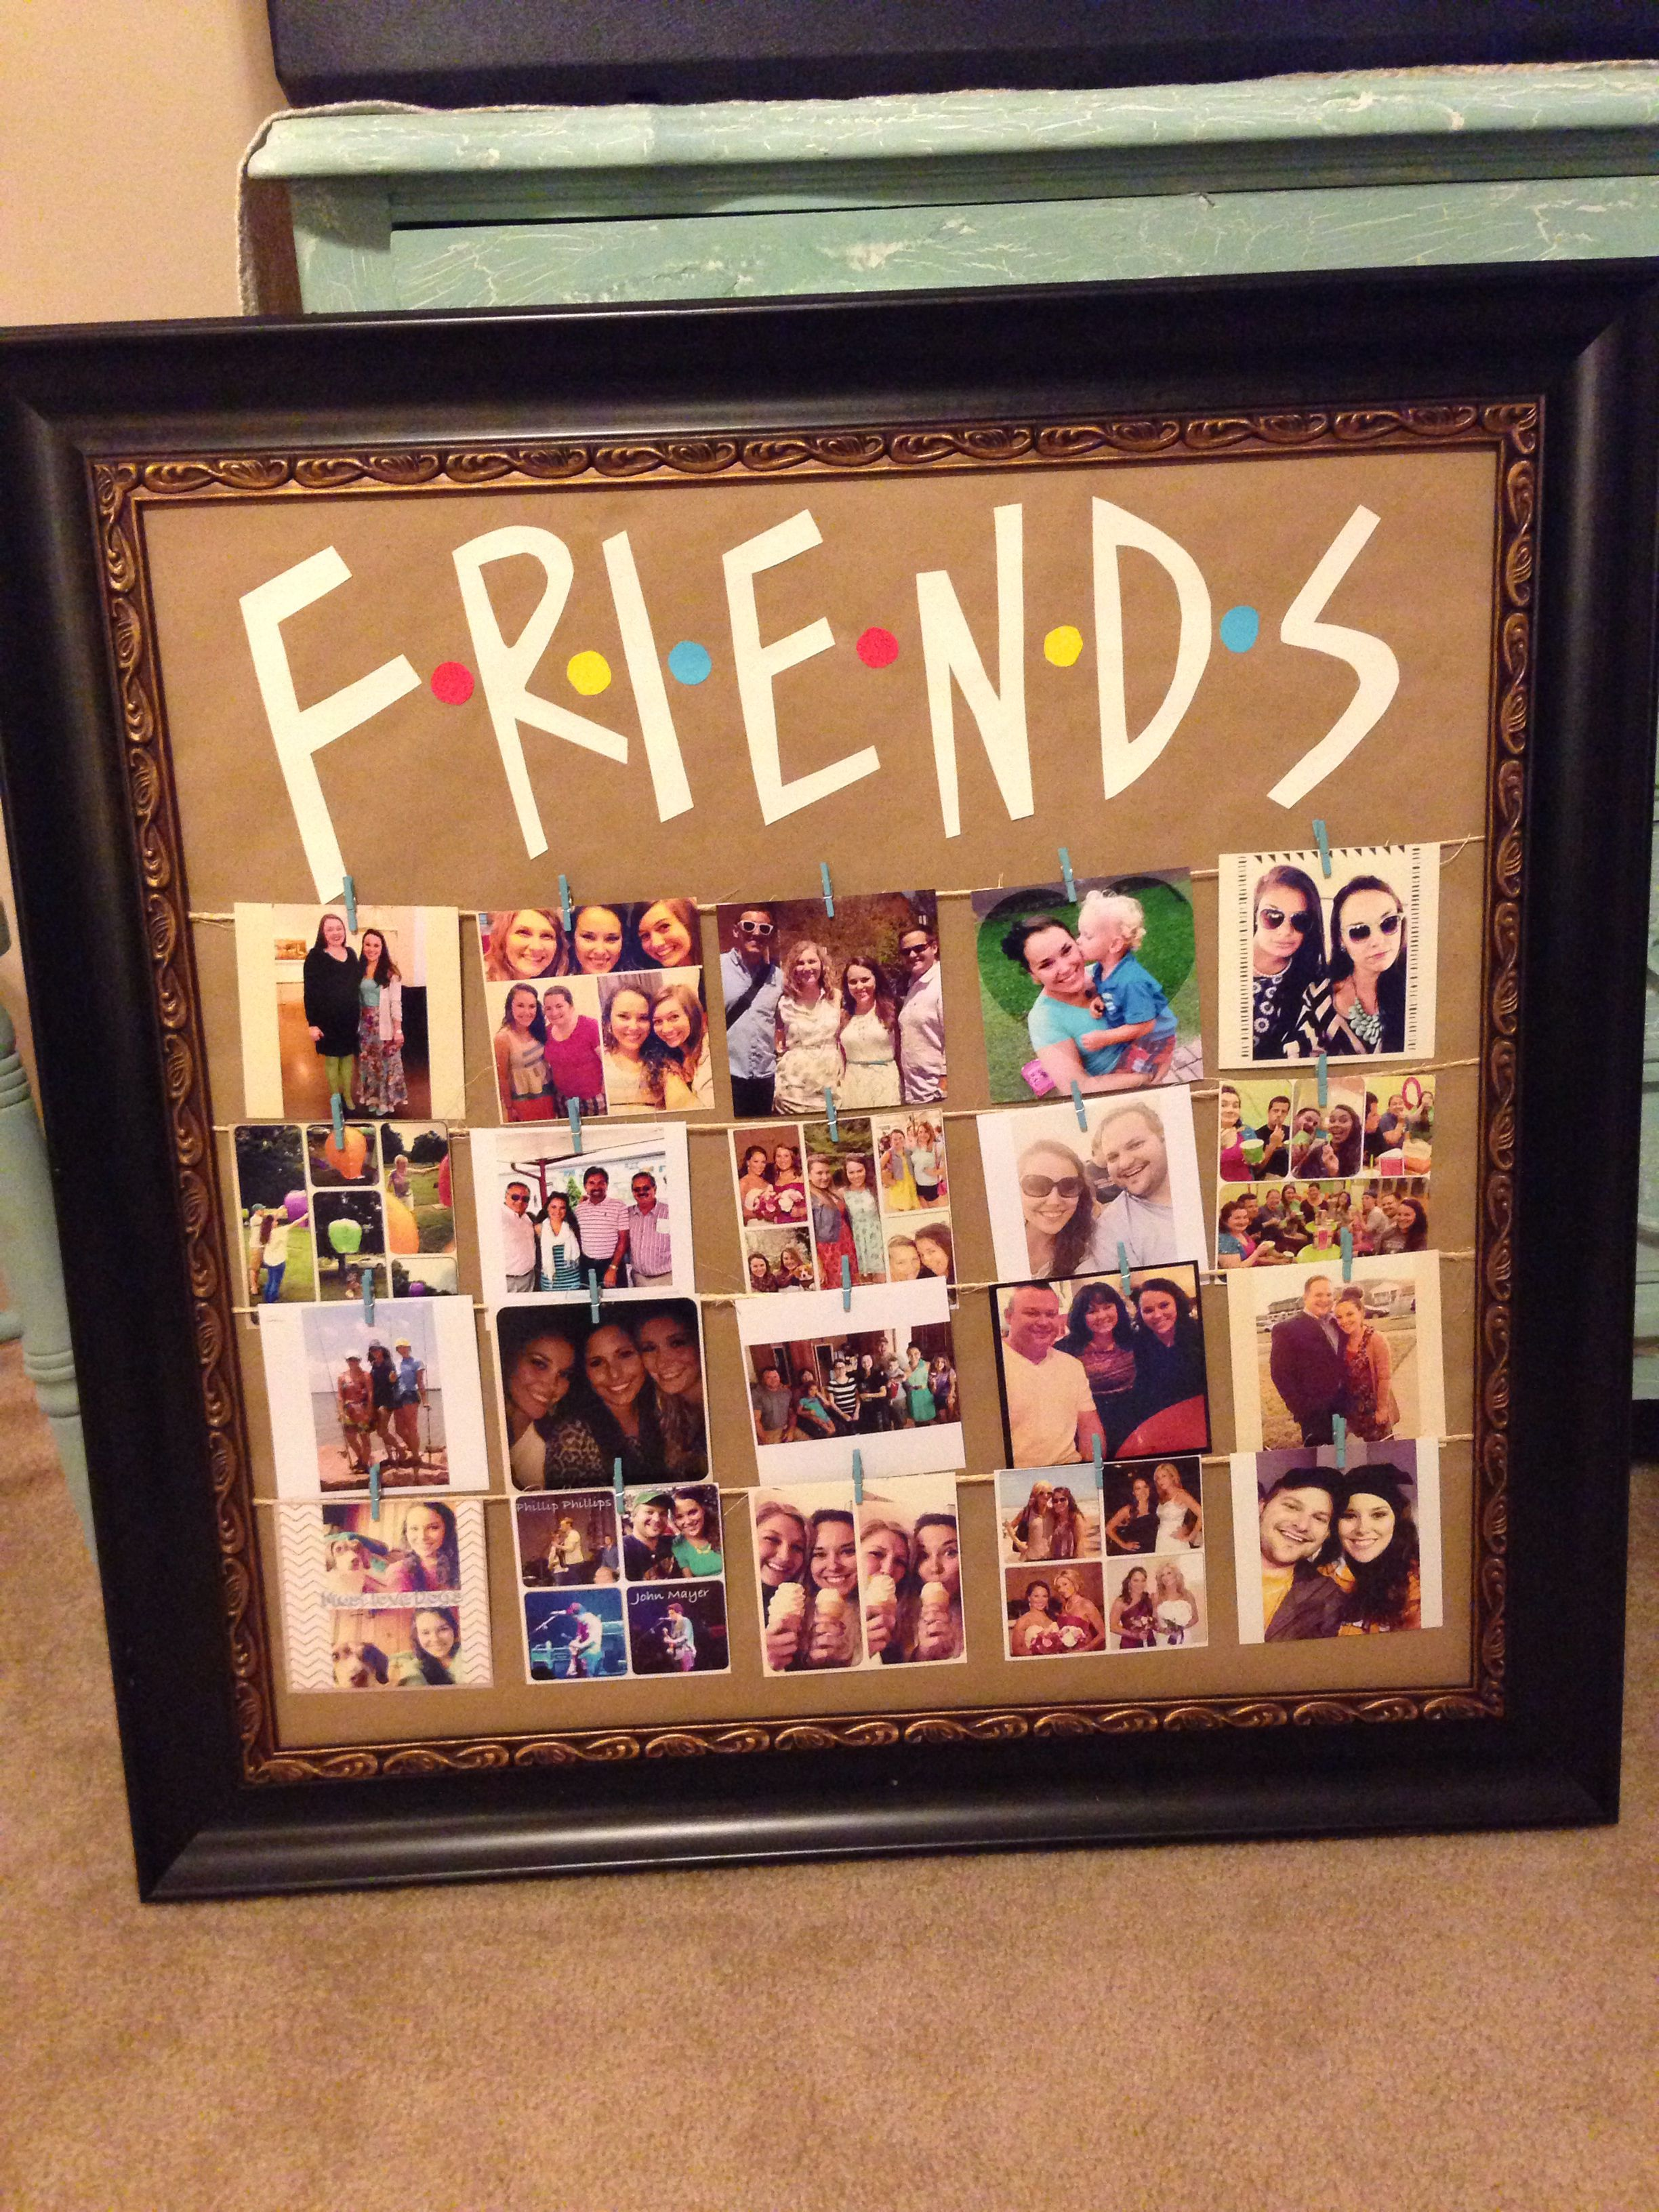 Friends tv show picture frame diy, party ideas | Friend ...